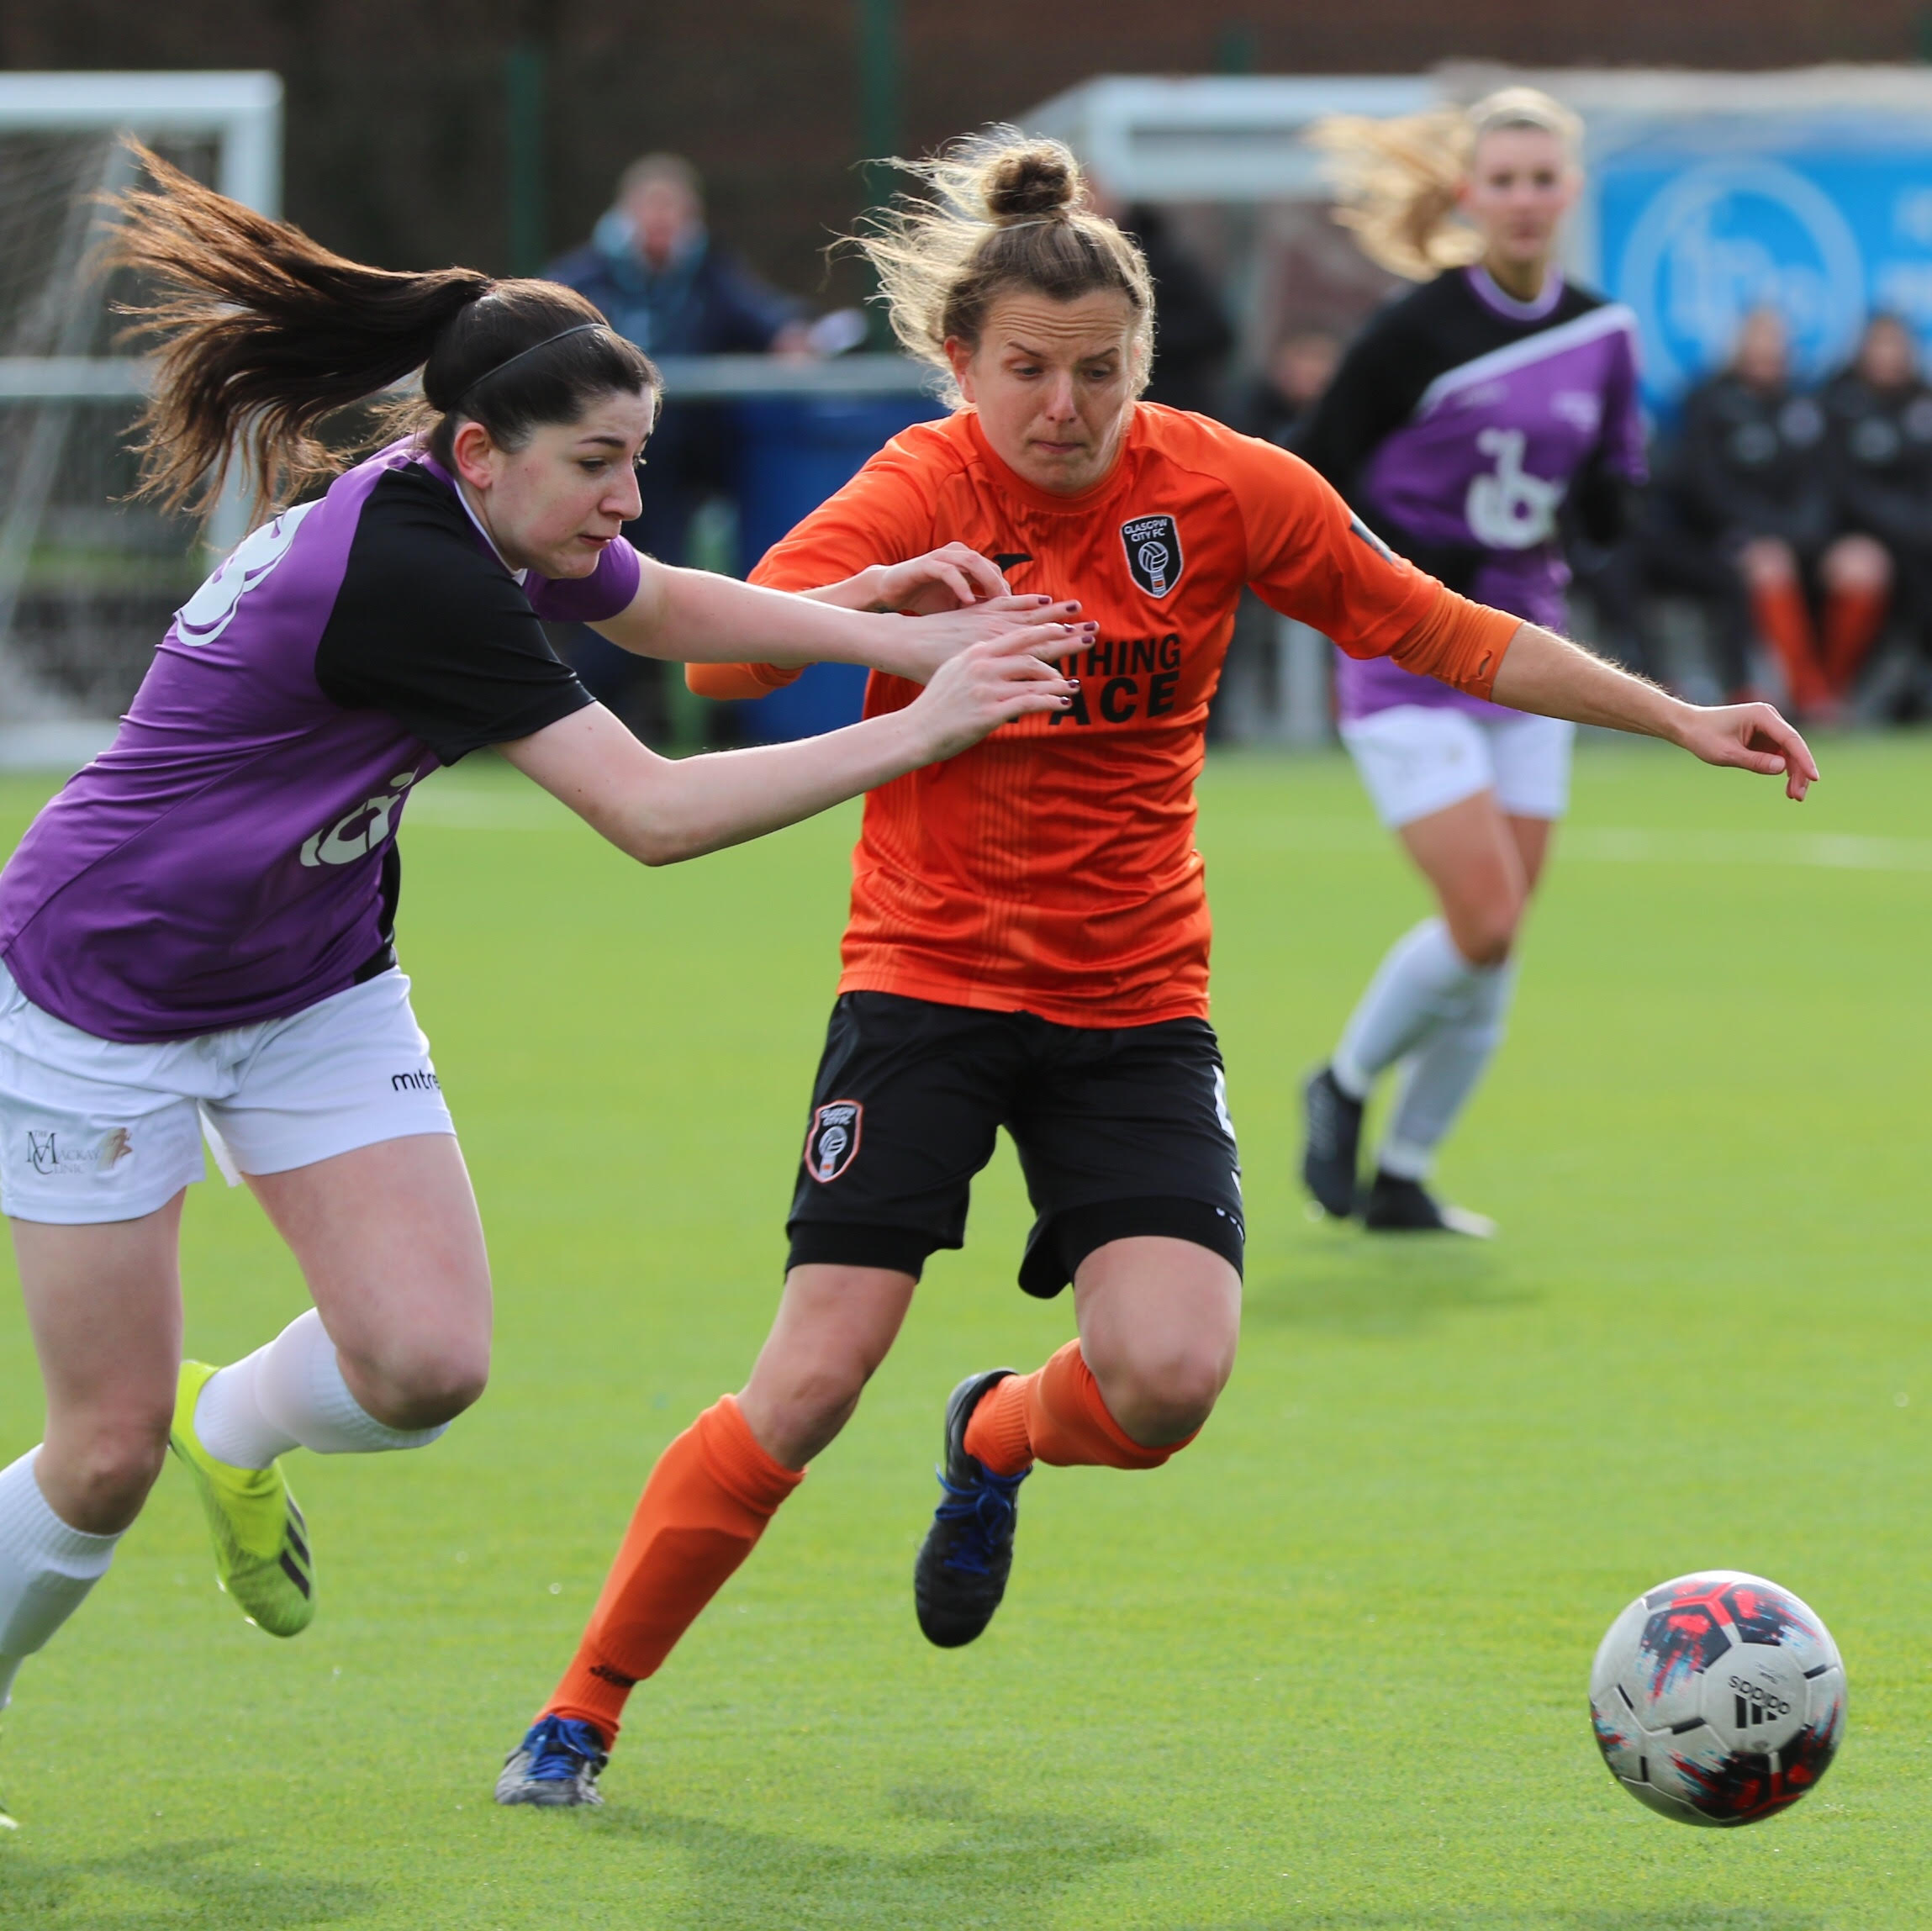 Kirsty Howat holds off the Stirling defence image by Tommy Hughes